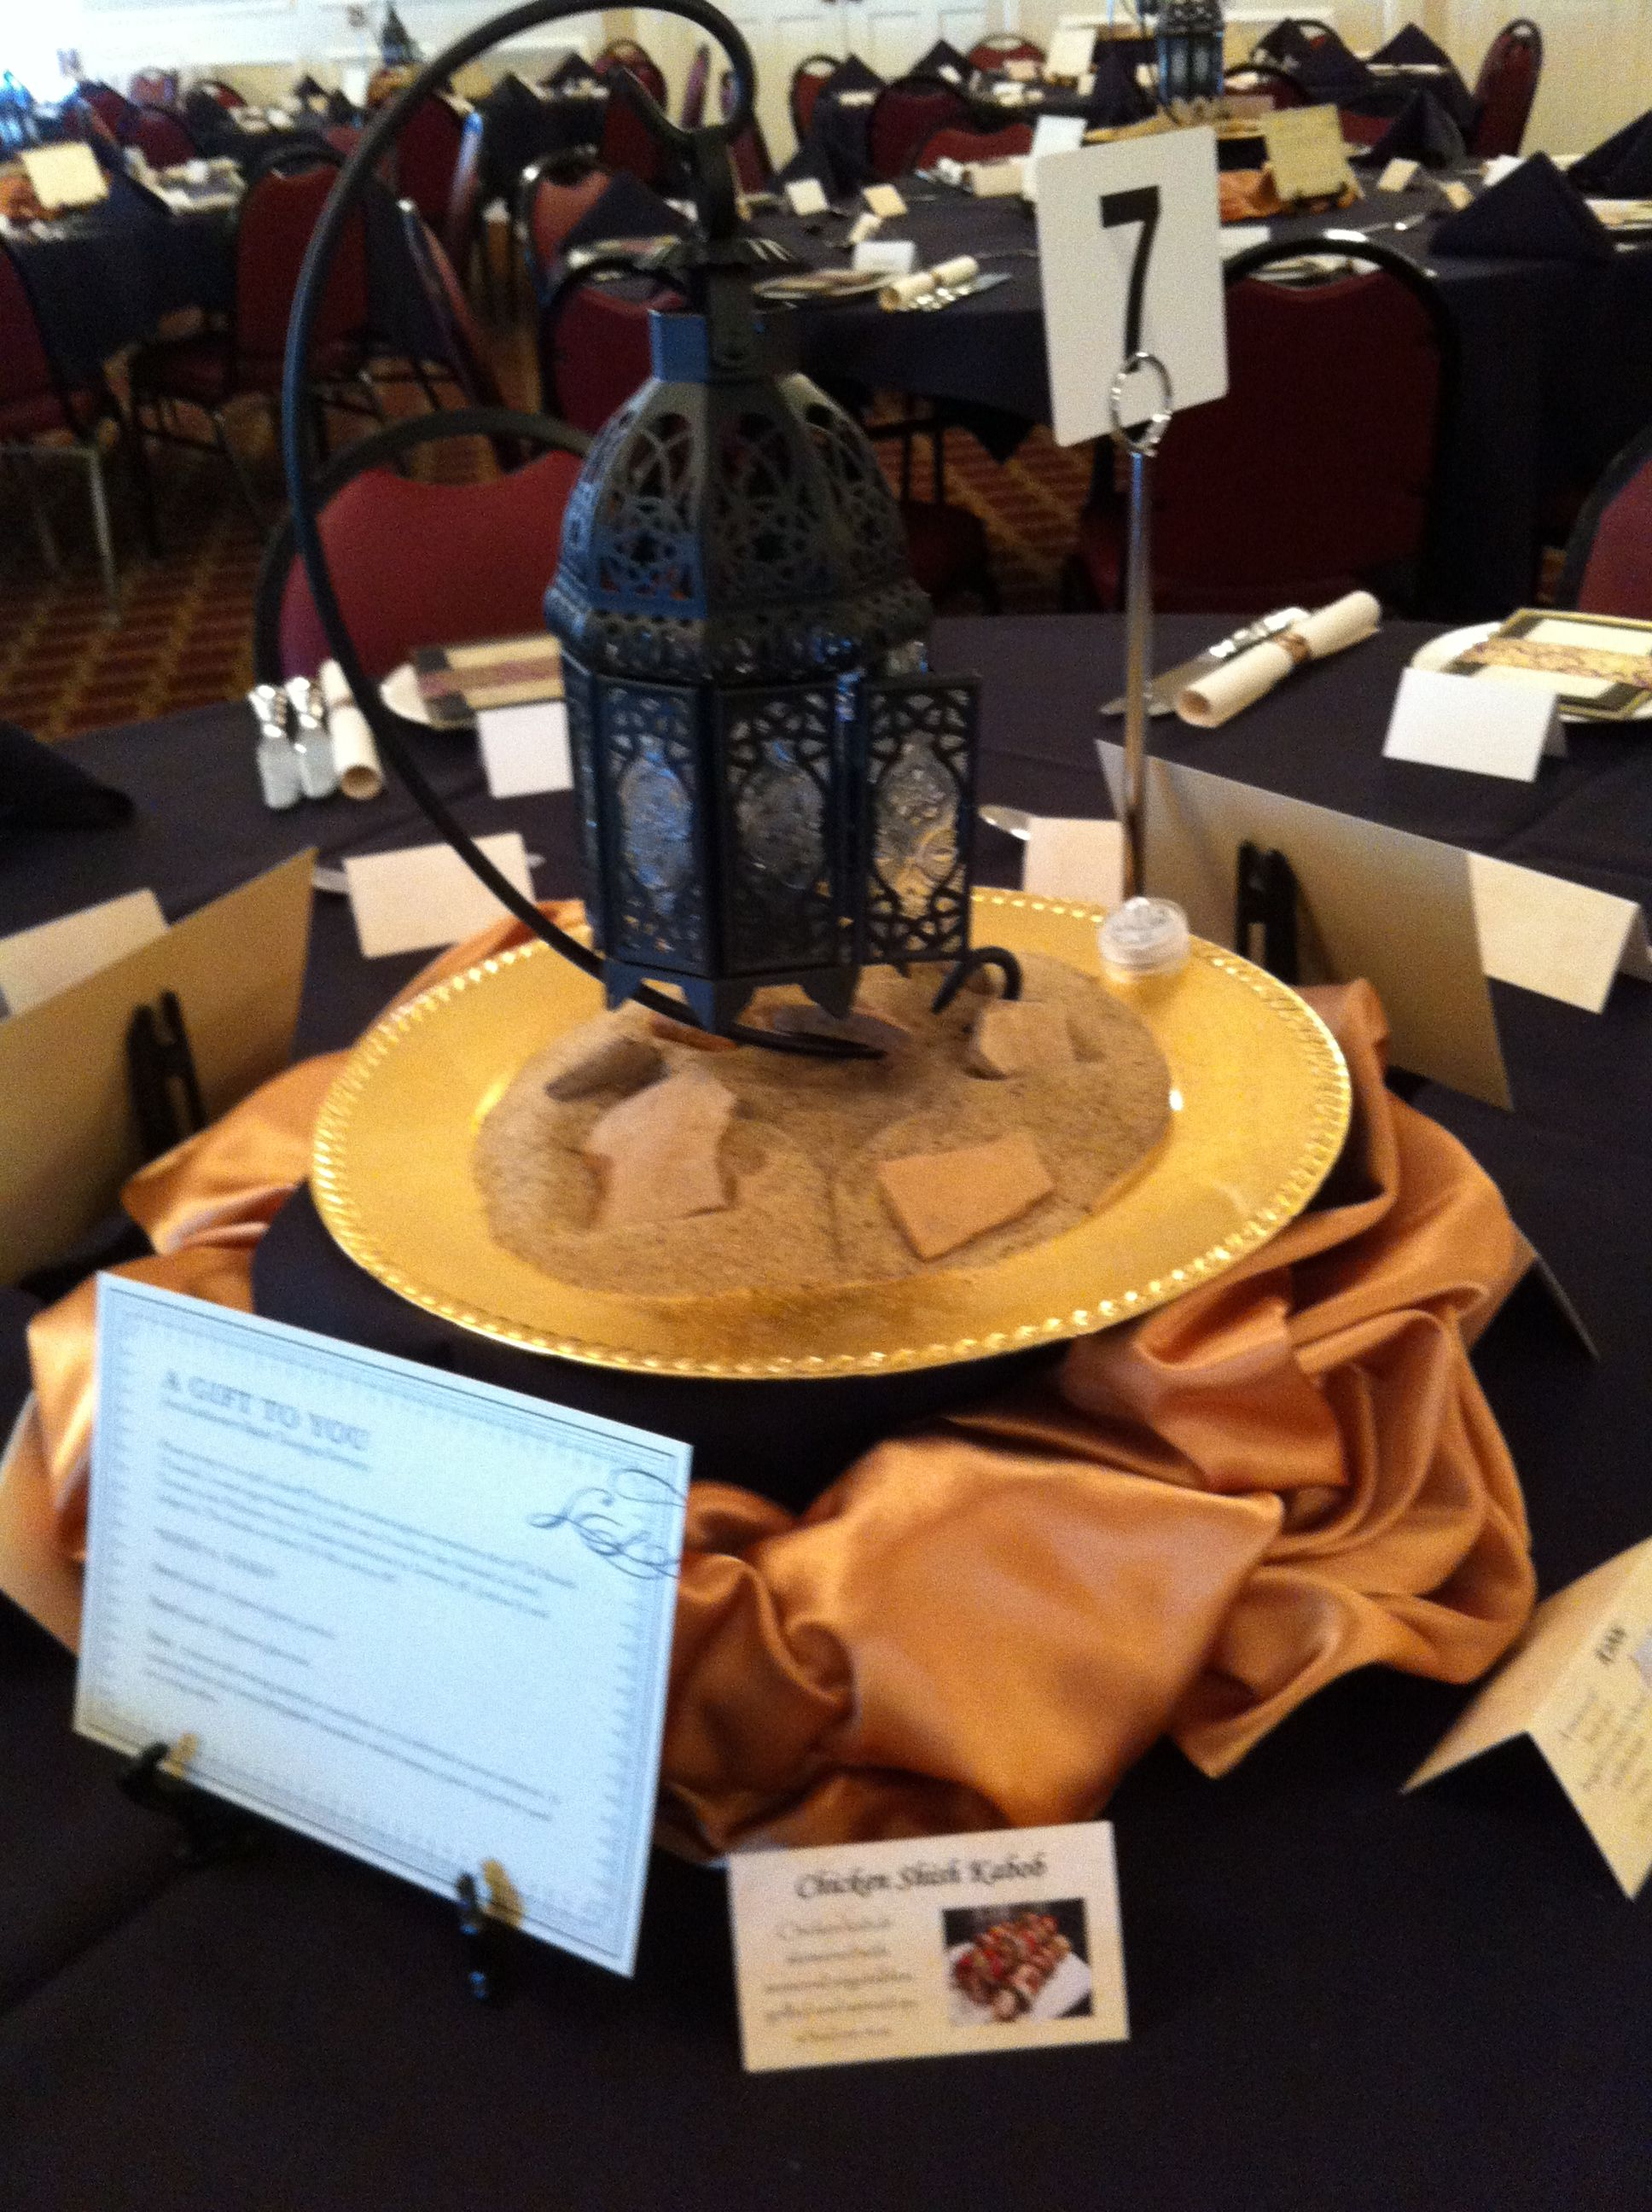 Tablescape at the 2012 Scriptorium Soiree in Fort Worth, TX.